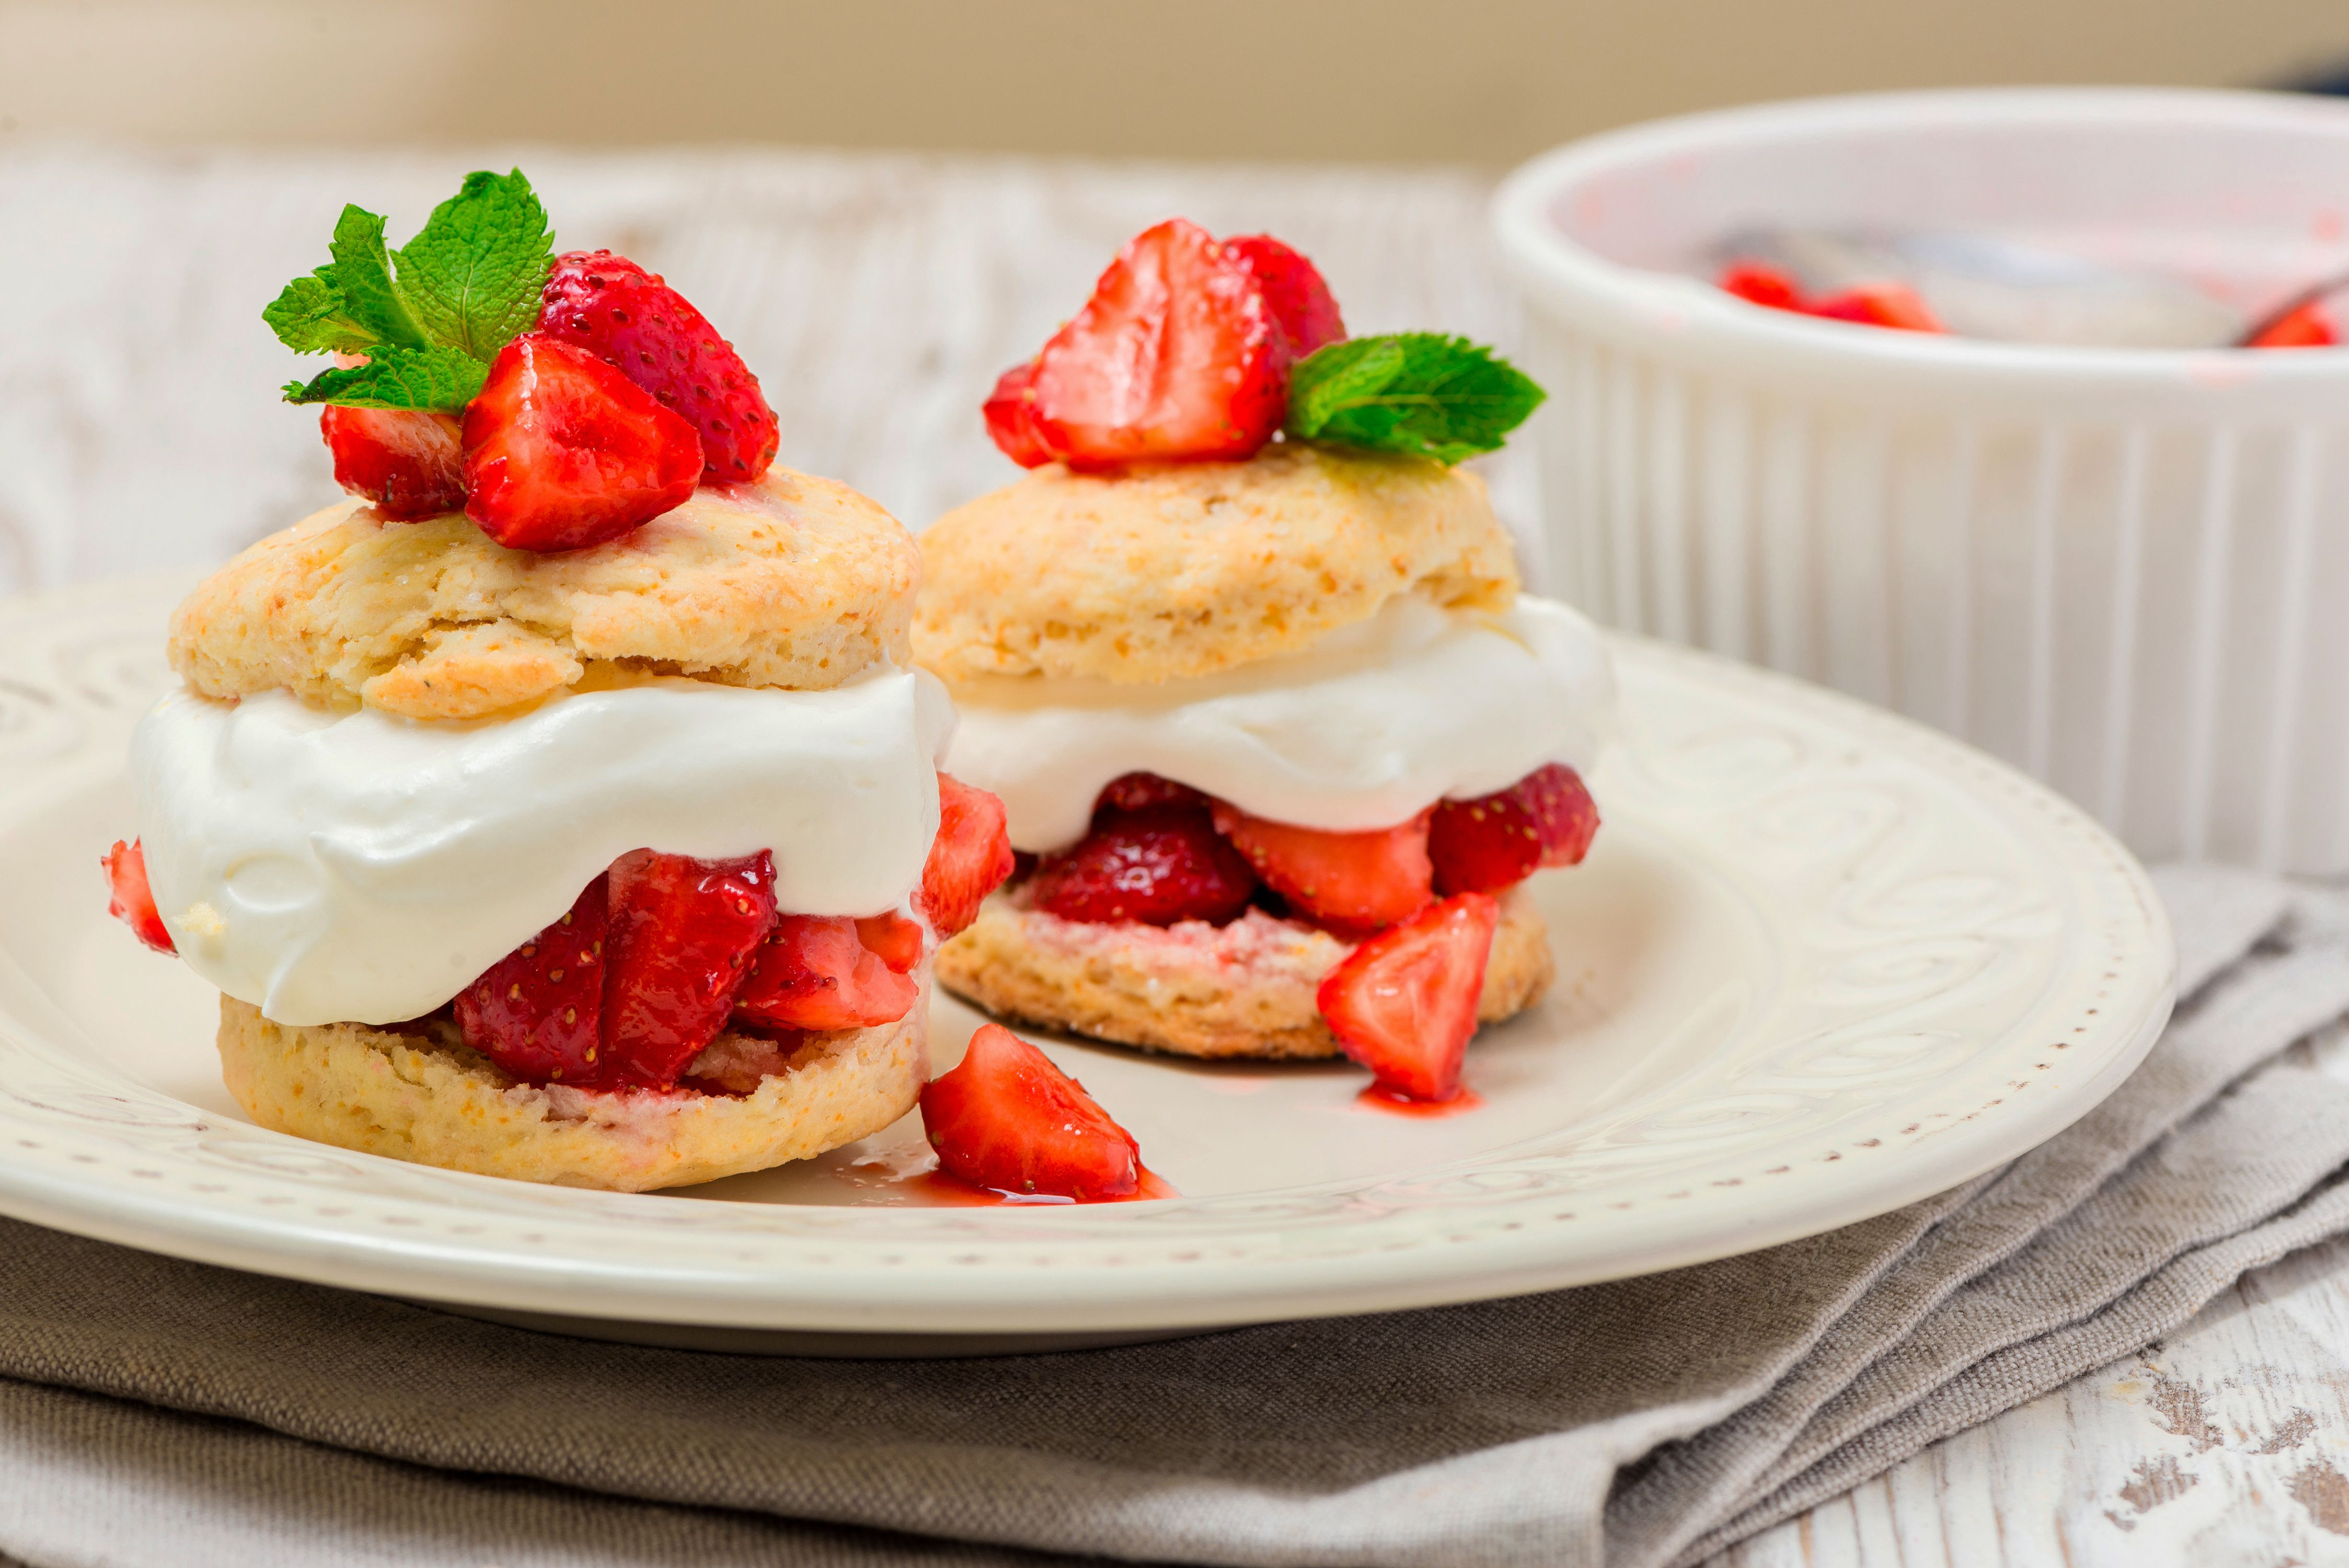 Add strawberries and whipped cream to biscuits to make shortcakes